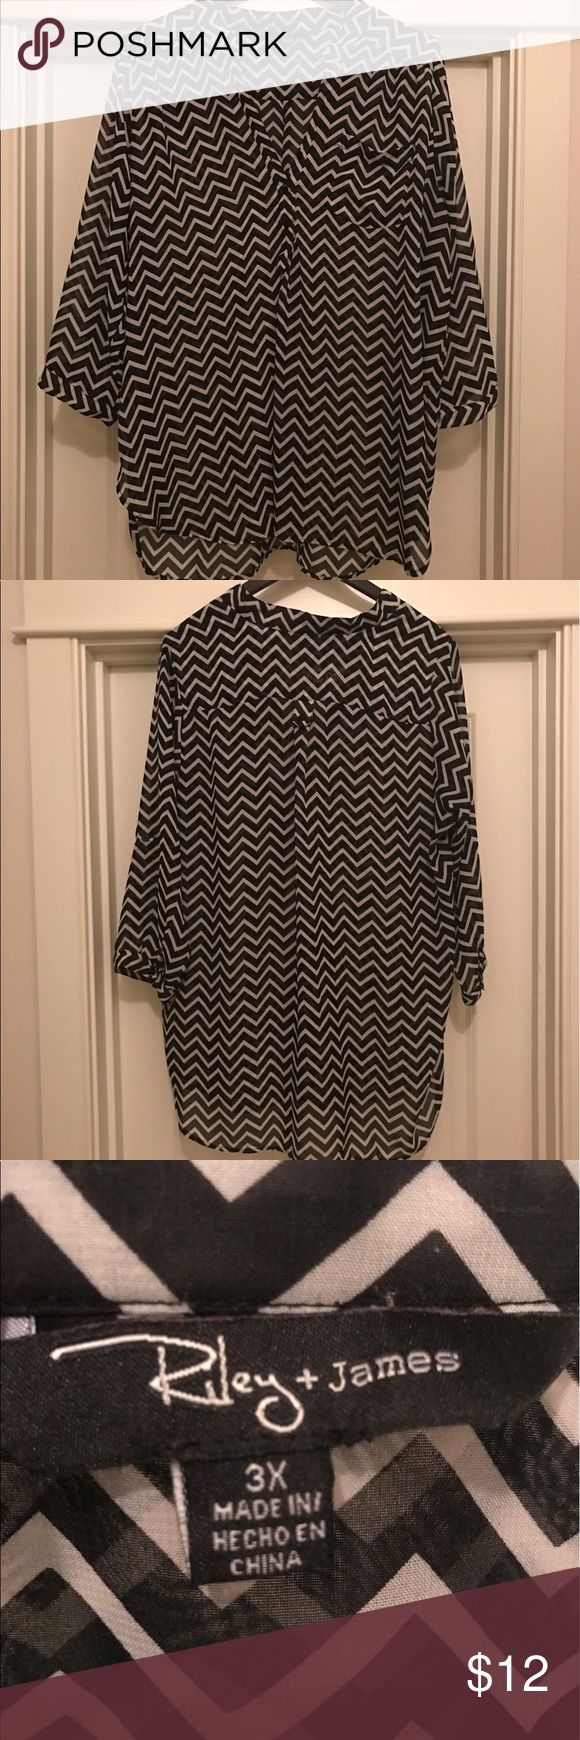 Riley + James 3X Women's Plus Size Chevron Print Chevron print anyone???  This fantastic Riley + James piece is a perfect fit for the office.  There is a small pocket on the front and the sheer like material is thinner for those hot summer days! Riley + James Tops Blouses